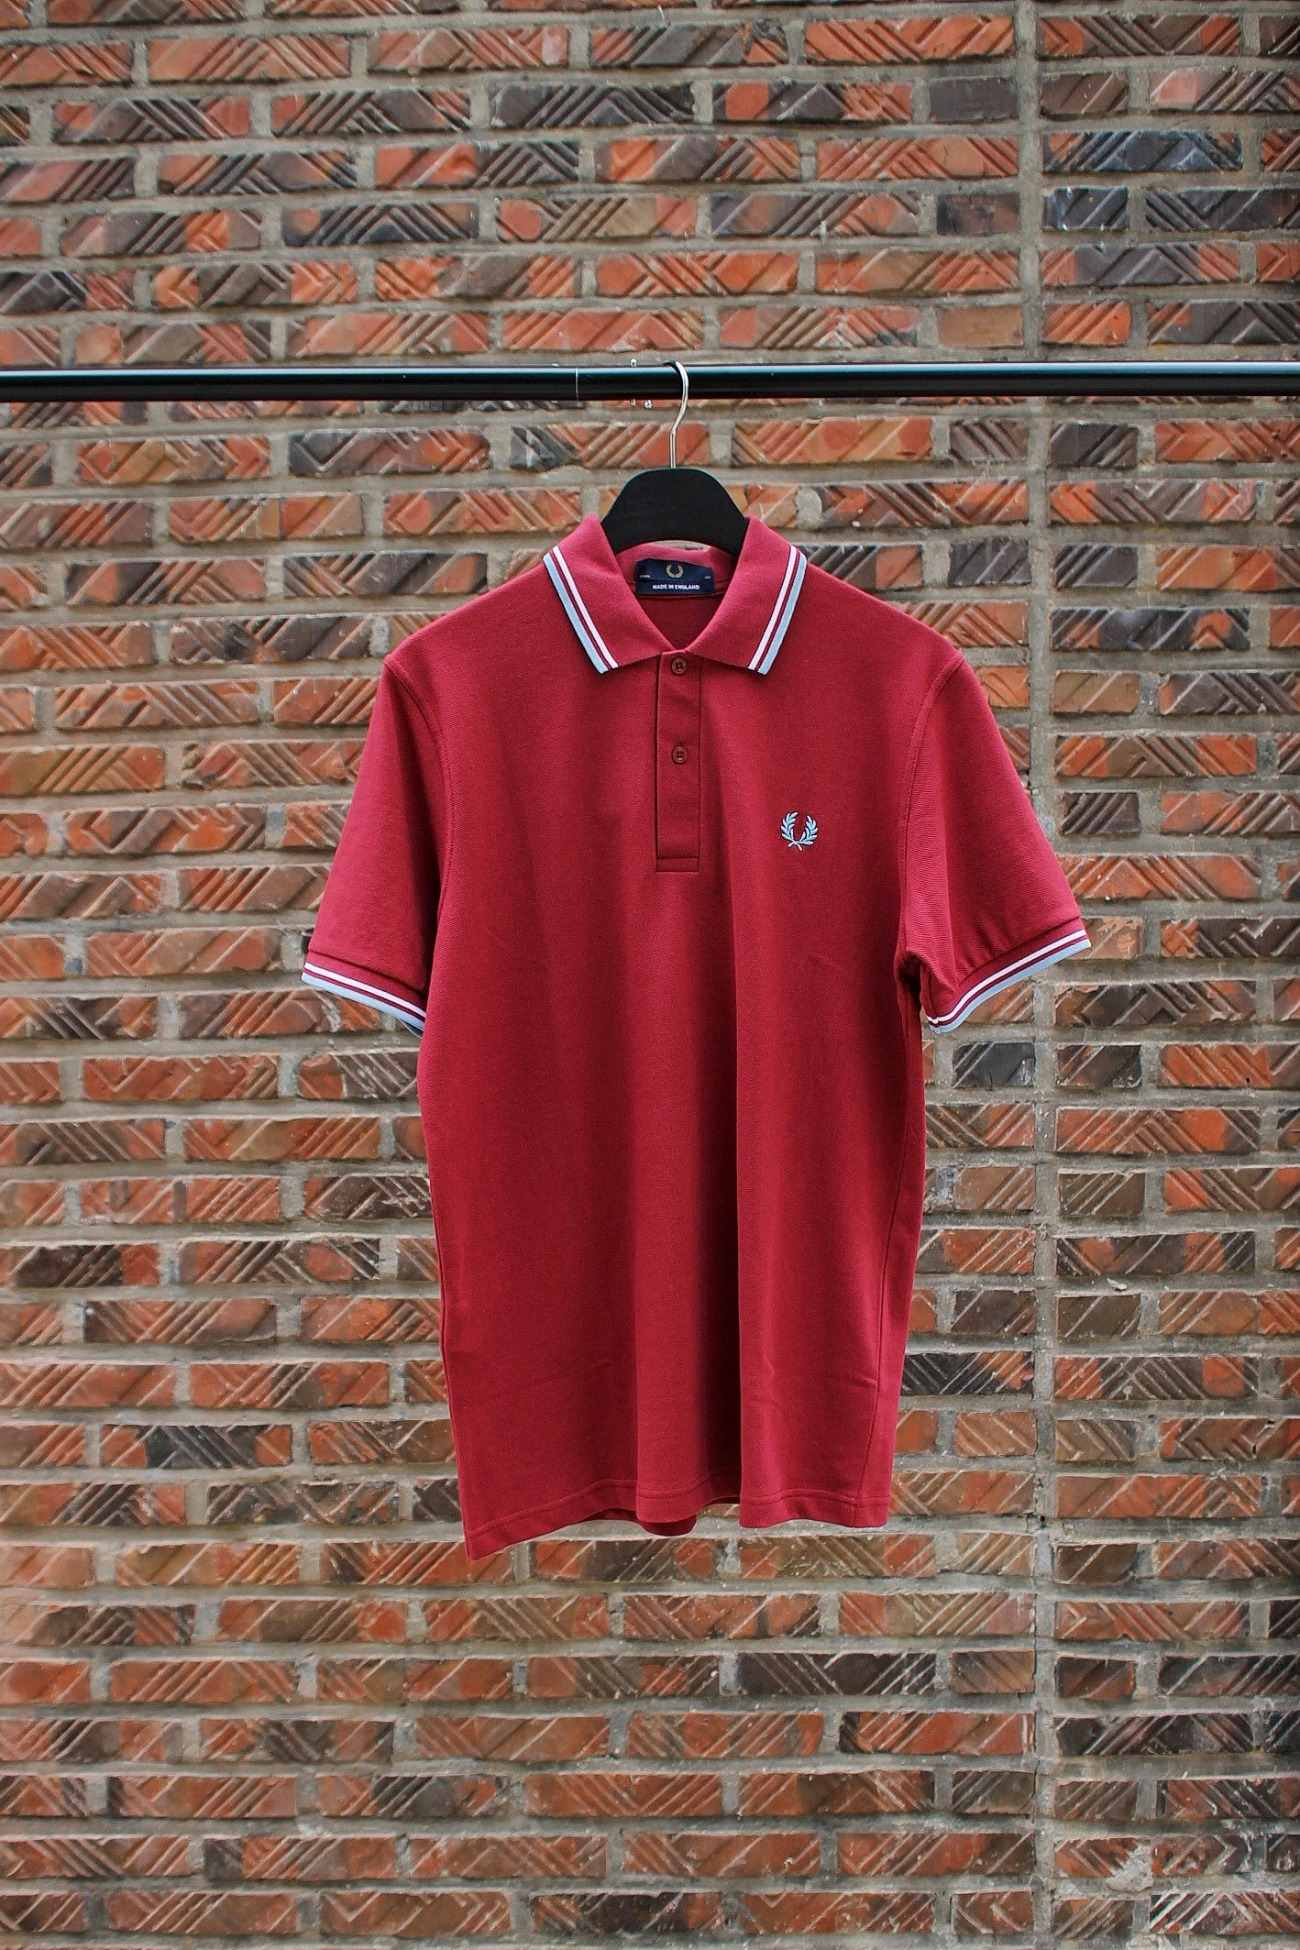 [FRED PERRY] Twin Tipped Fred Perry Shirt (Re-Issues) - Maroon